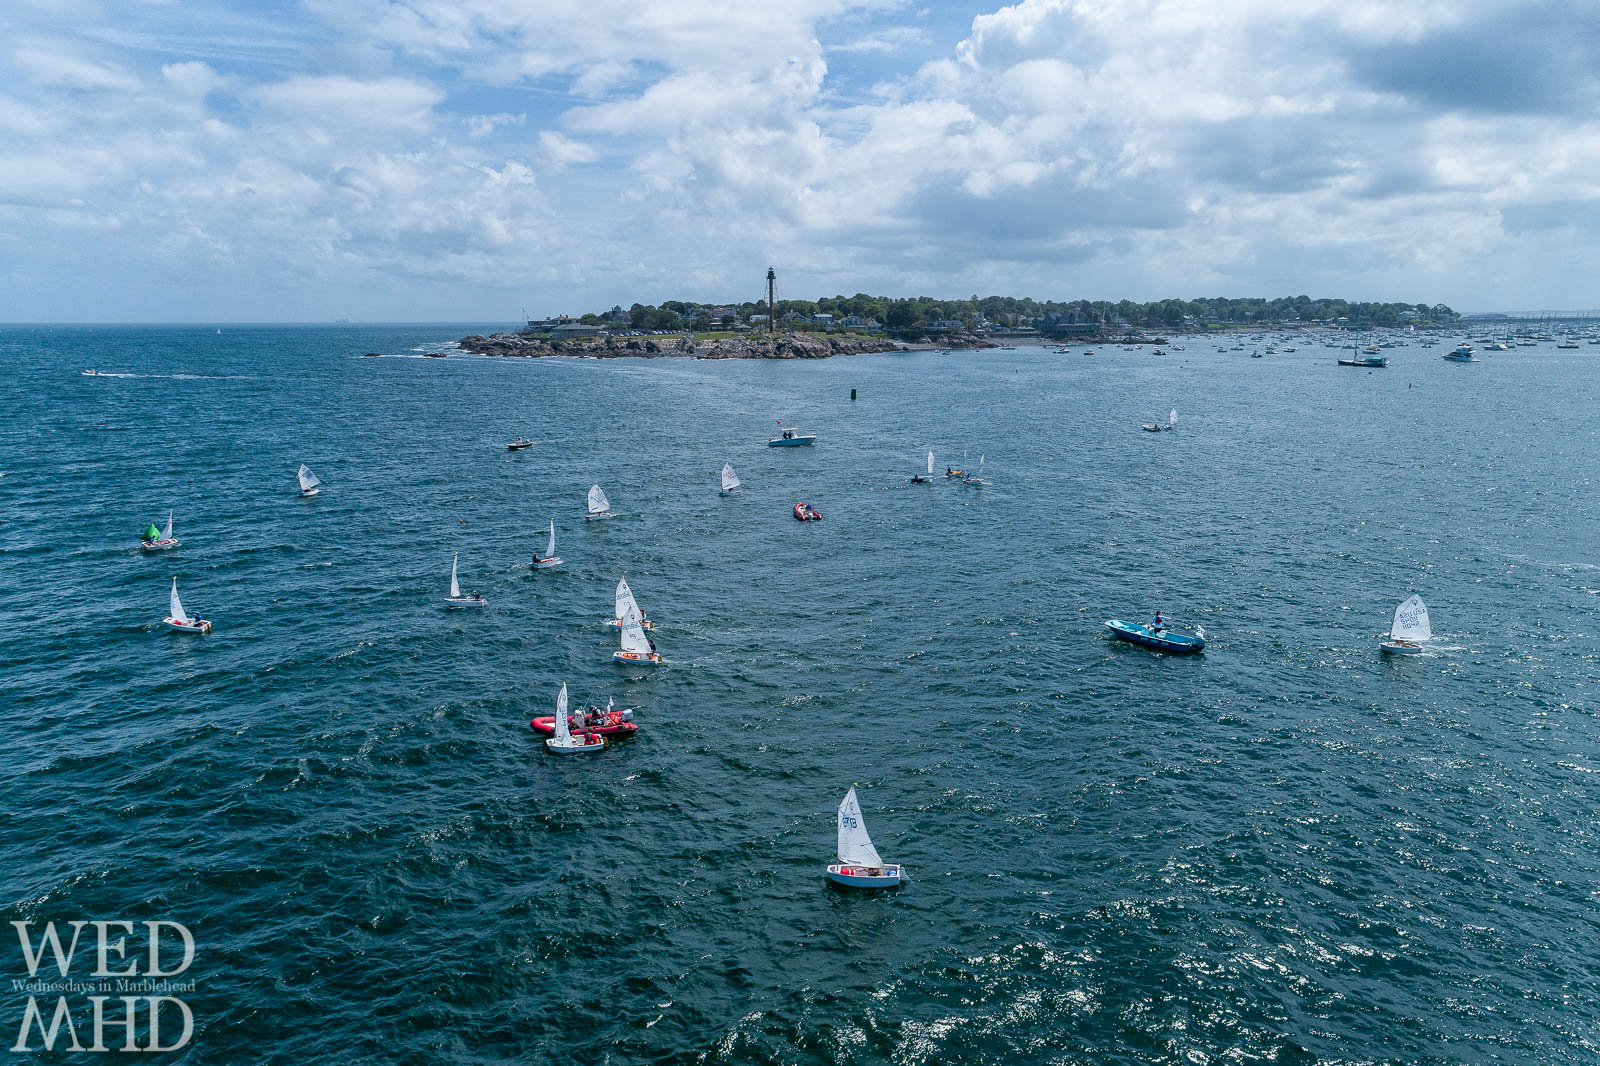 Marblehead Junior Race Week begins on Monday and continues through Wednesday with Optis and Lasers racing in the waters around Marblehead